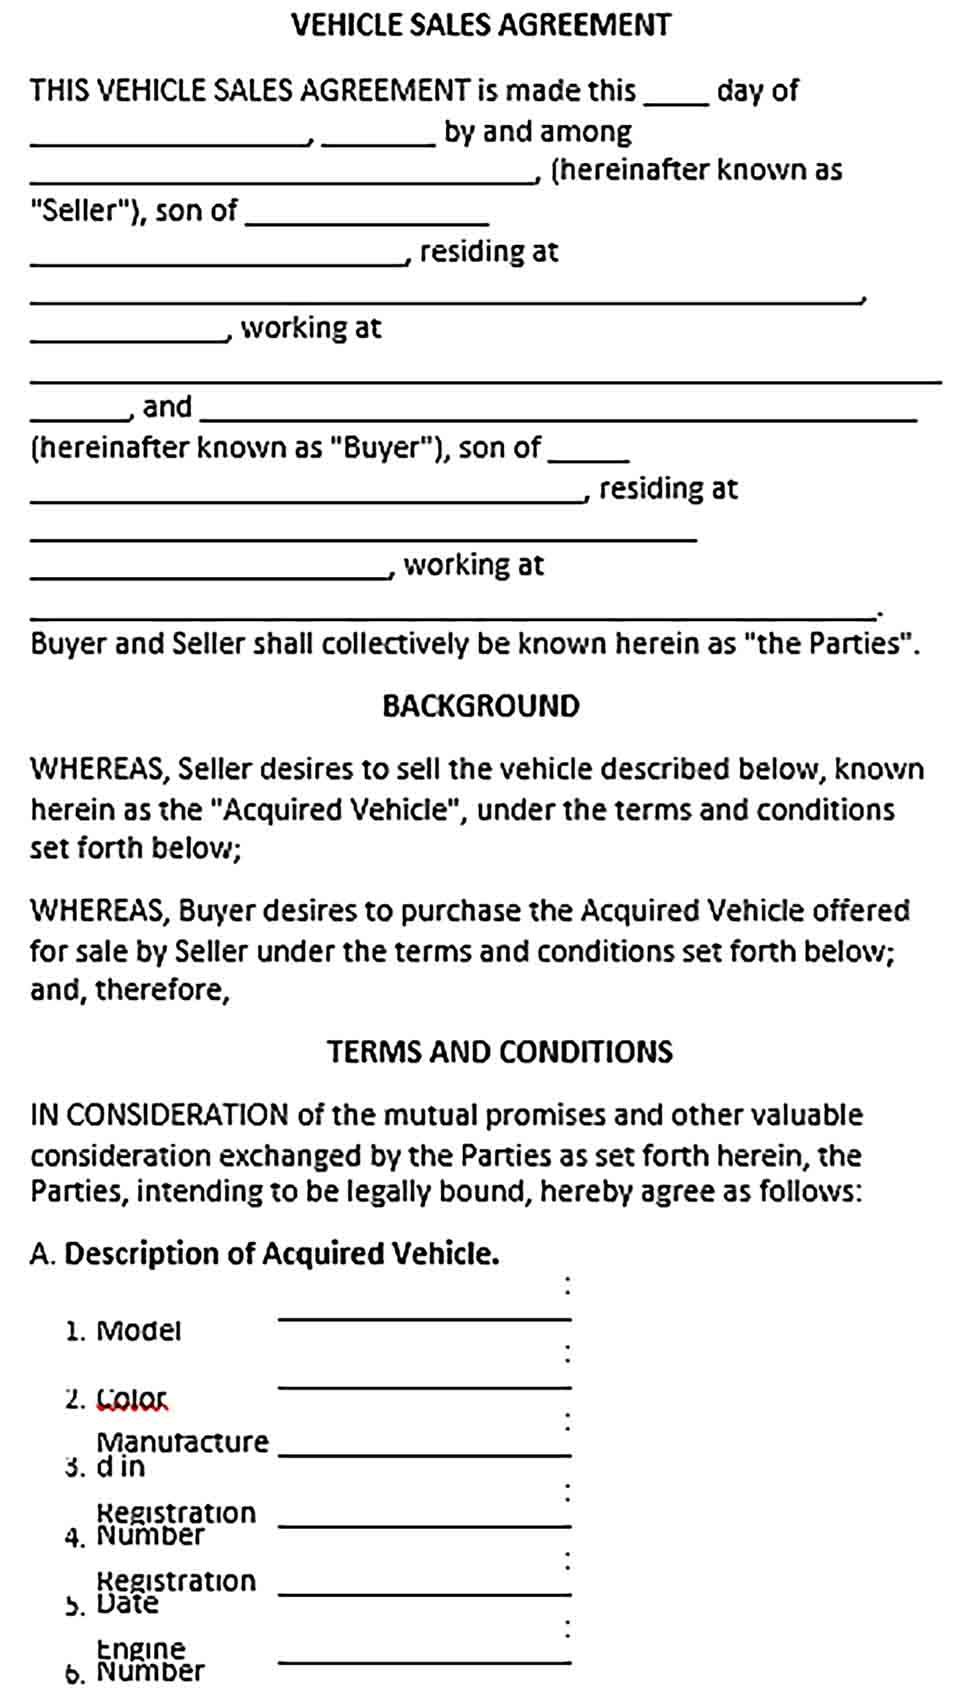 Sample VEHICLE SALES AGREEMENT 1